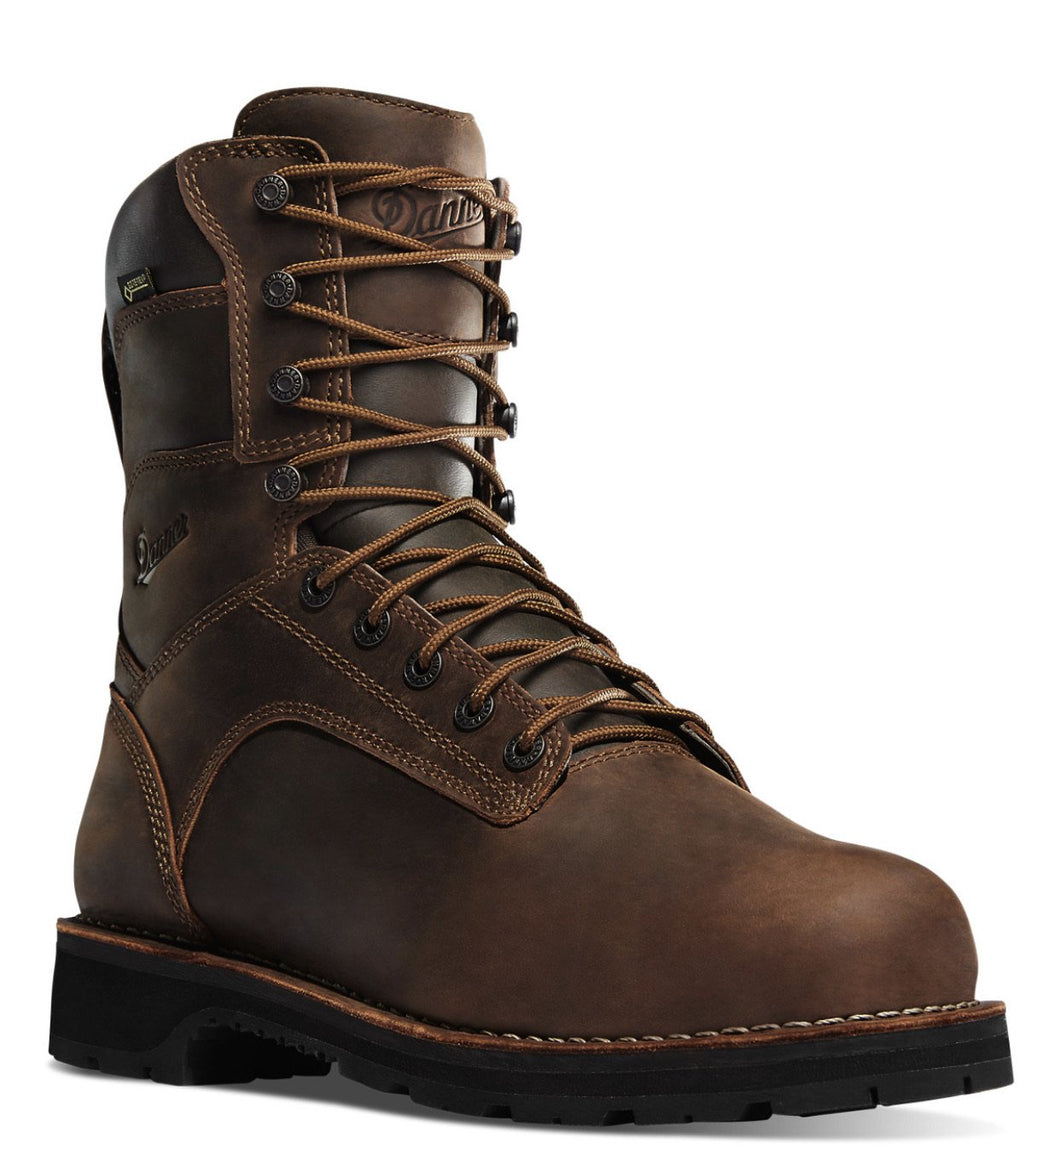 Danner #16285 Men's Footwearman 8